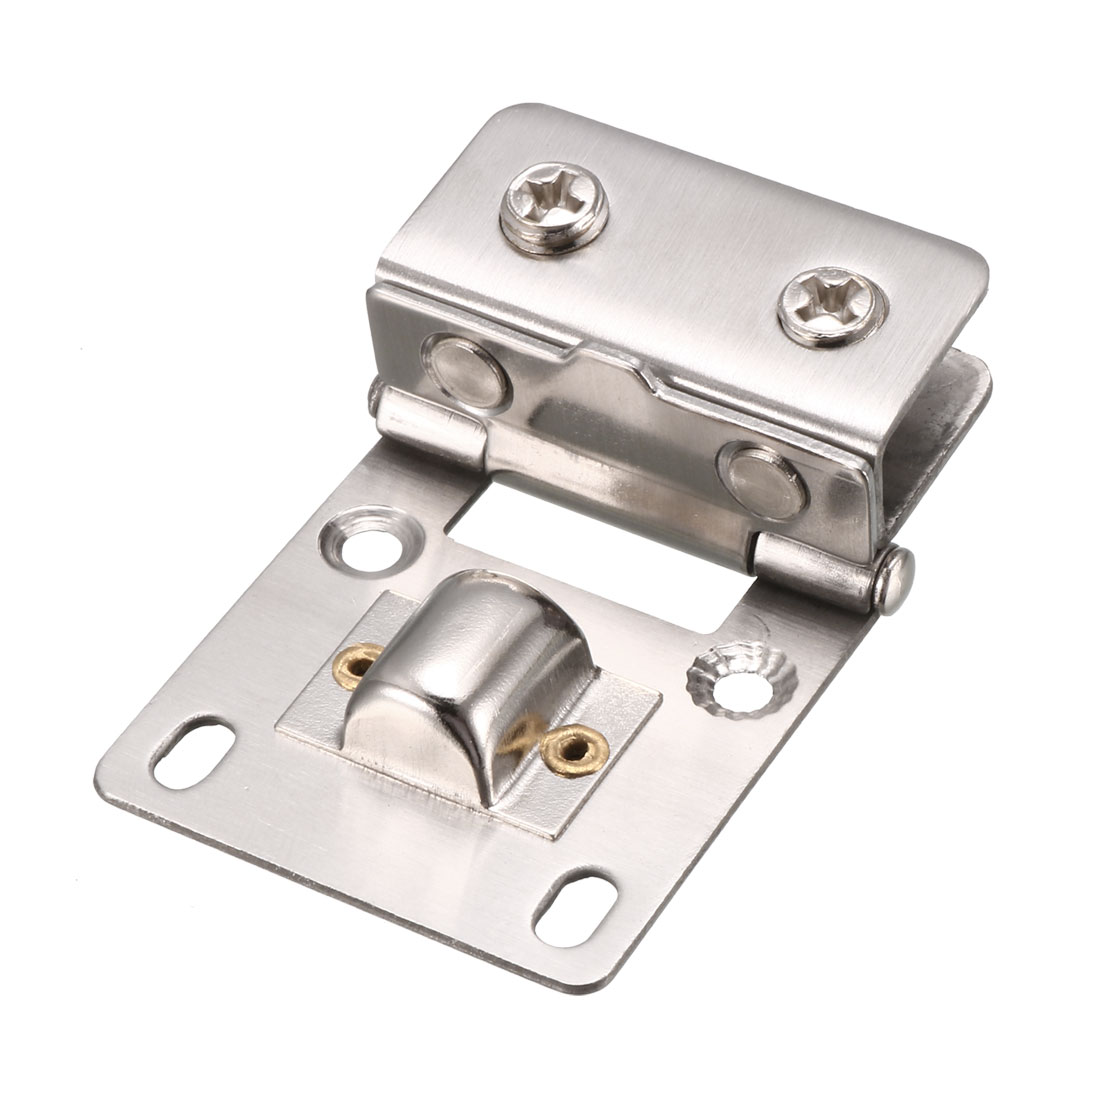 2 Pcs Cabinet Glass Door Wall Mounted Metal Hinge Silver Tone